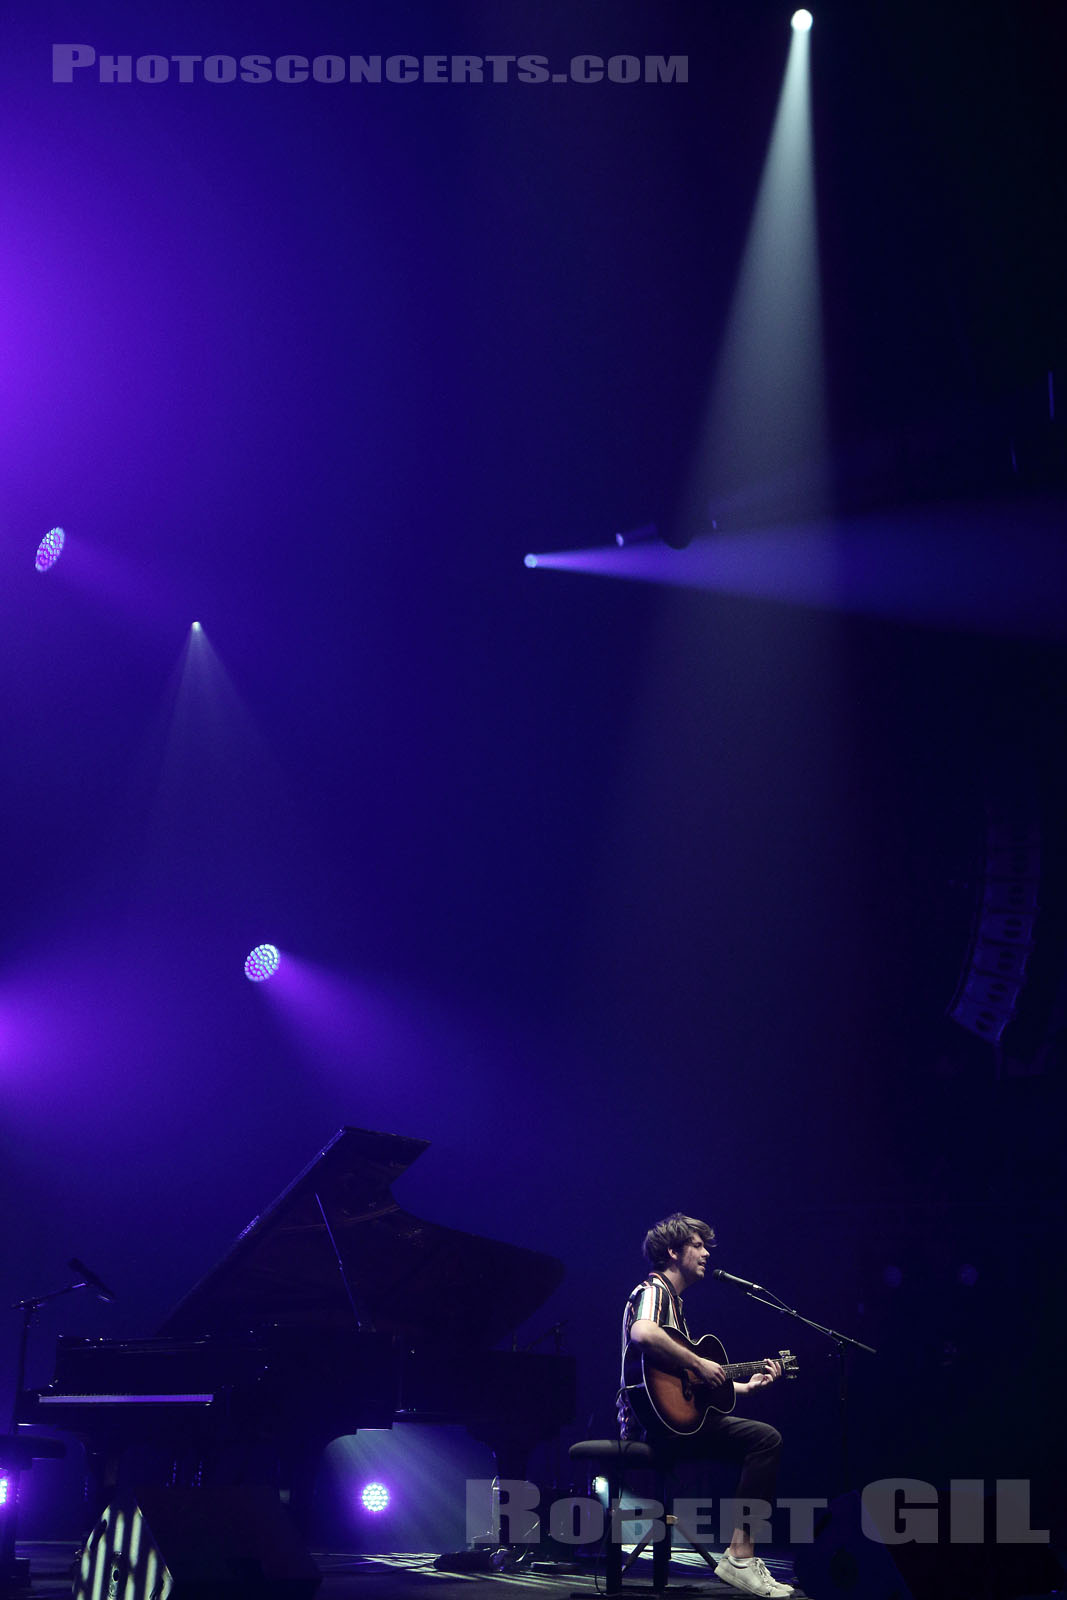 SAGE - 2018-07-02 - PARIS - Philharmonie de Paris 2